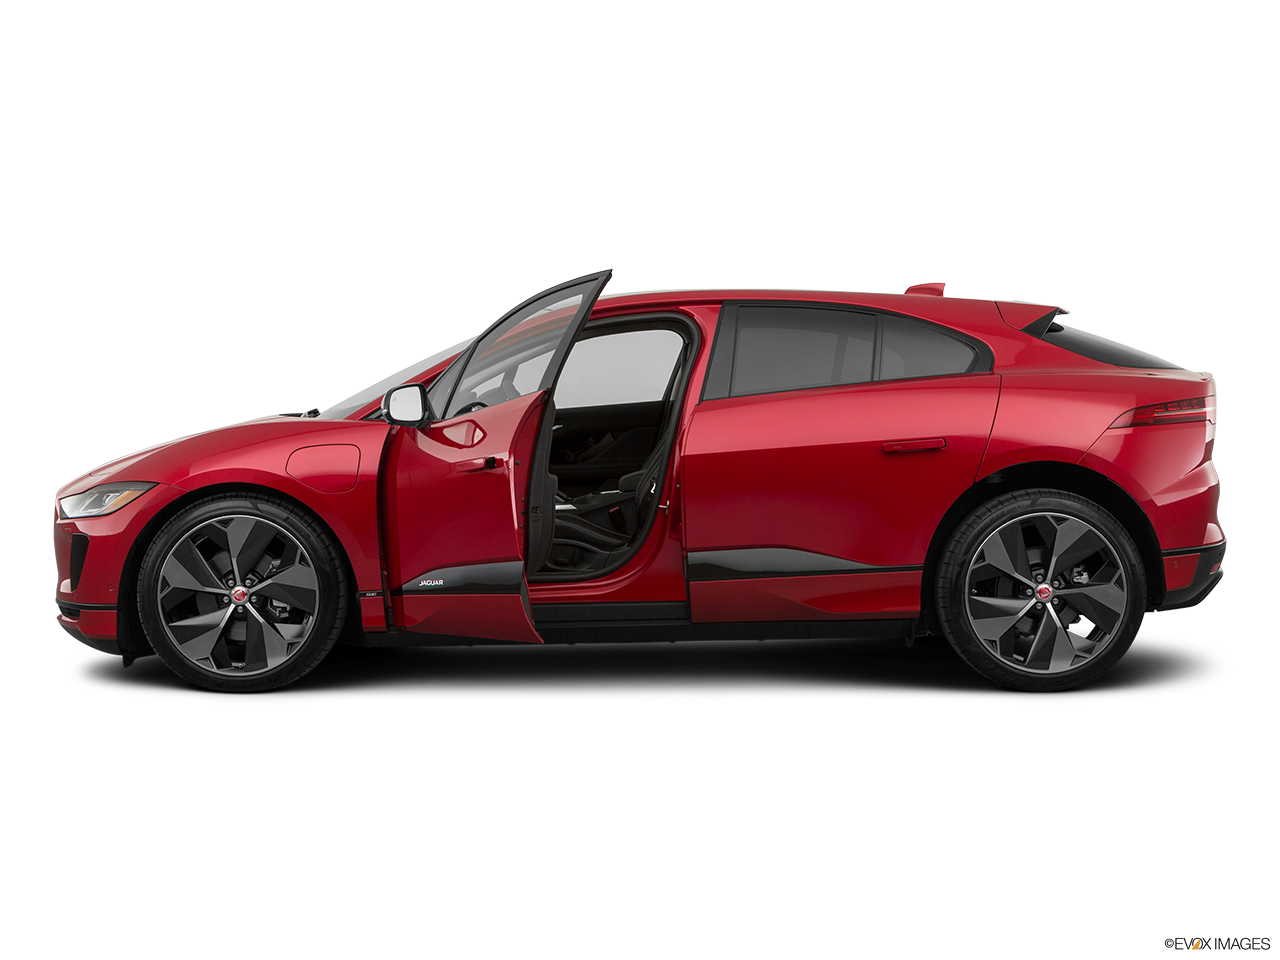 Side view of the Jaguar I-Pace